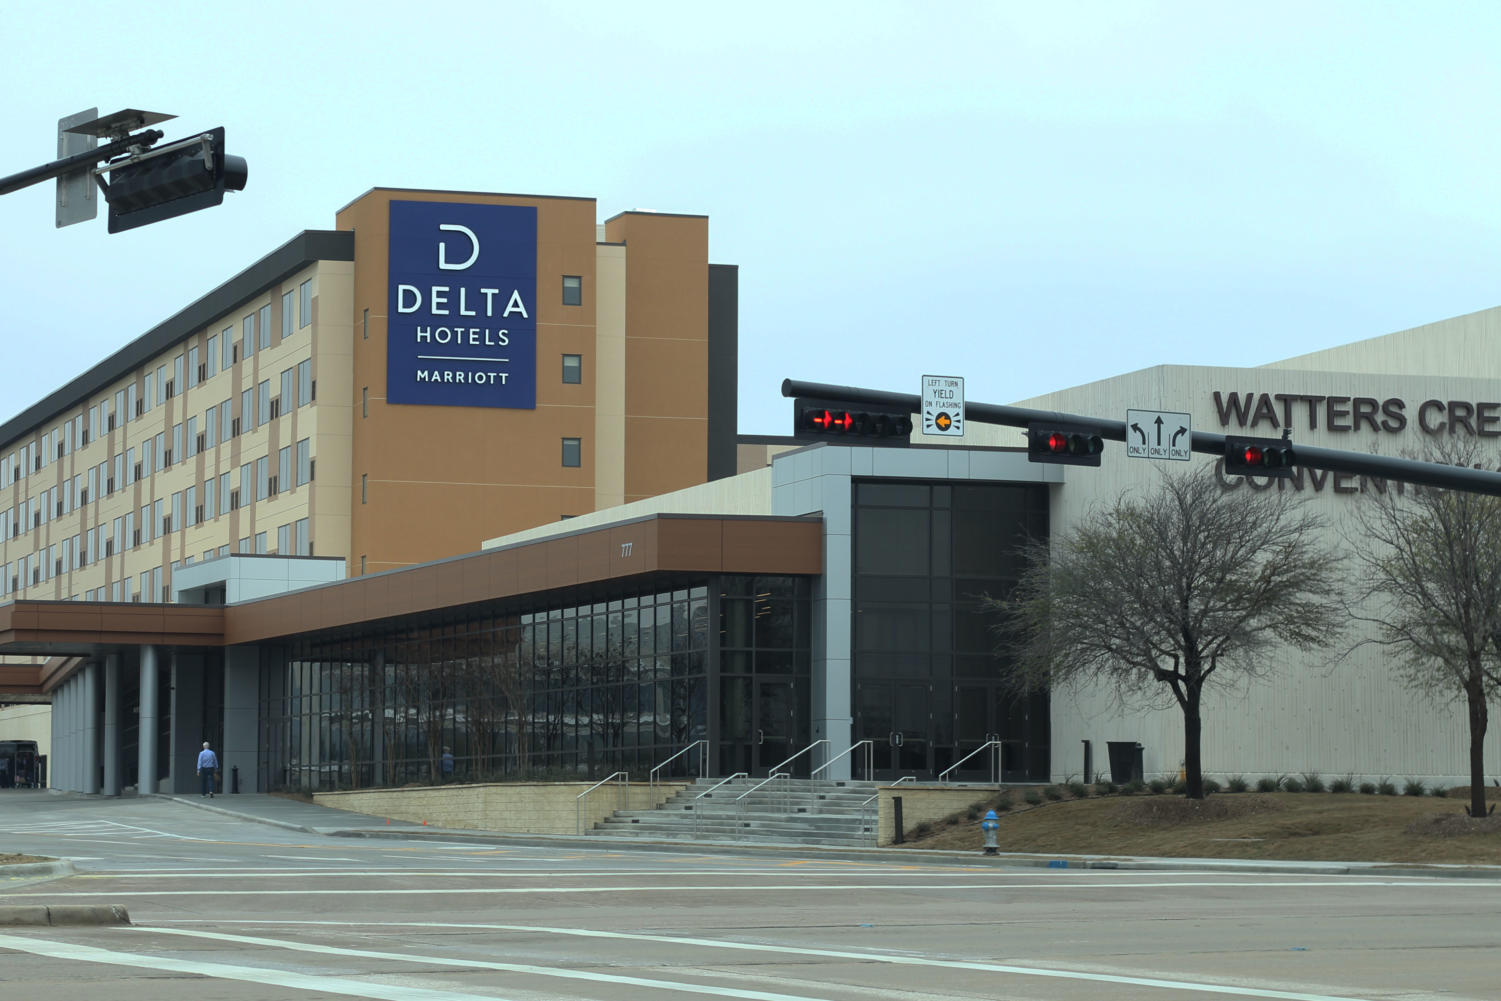 The Watters Creek Convention Center and Delta Marriott Hotel opened Jan 15.